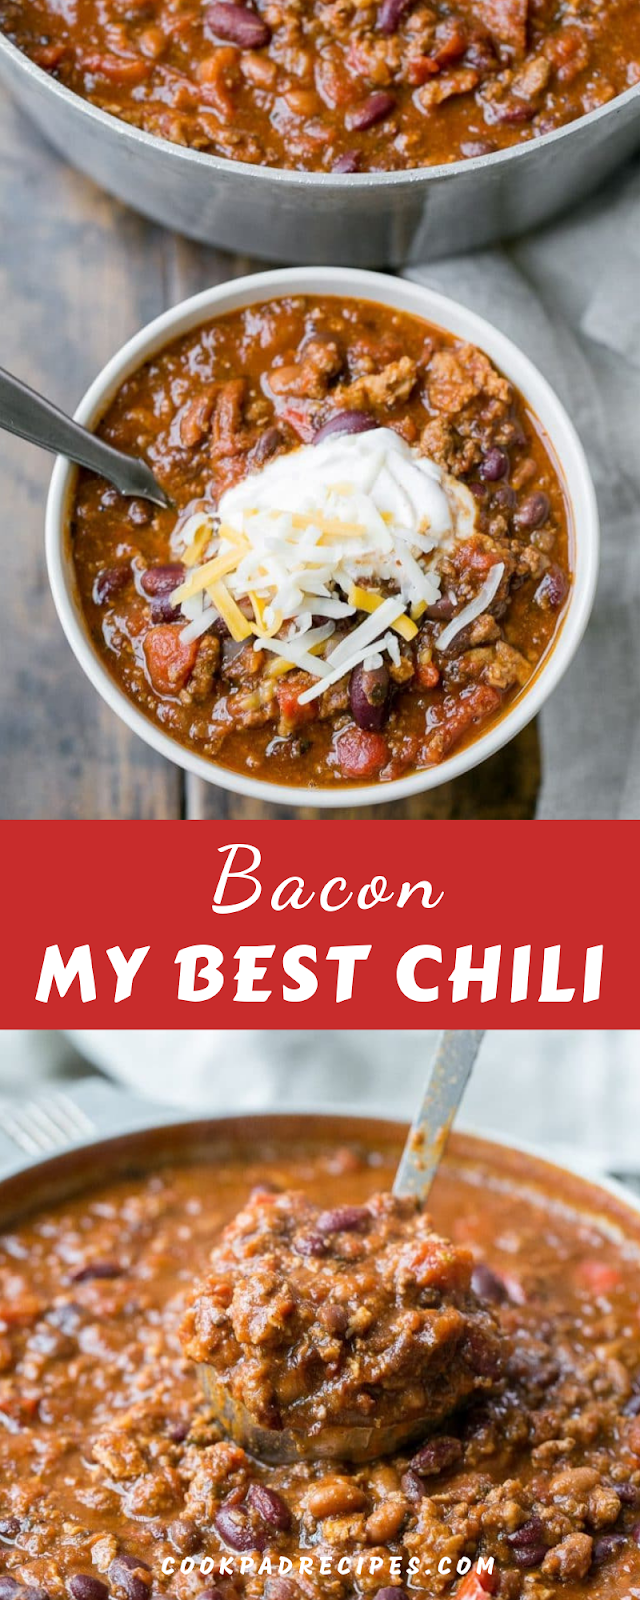 MY BEST CHILI